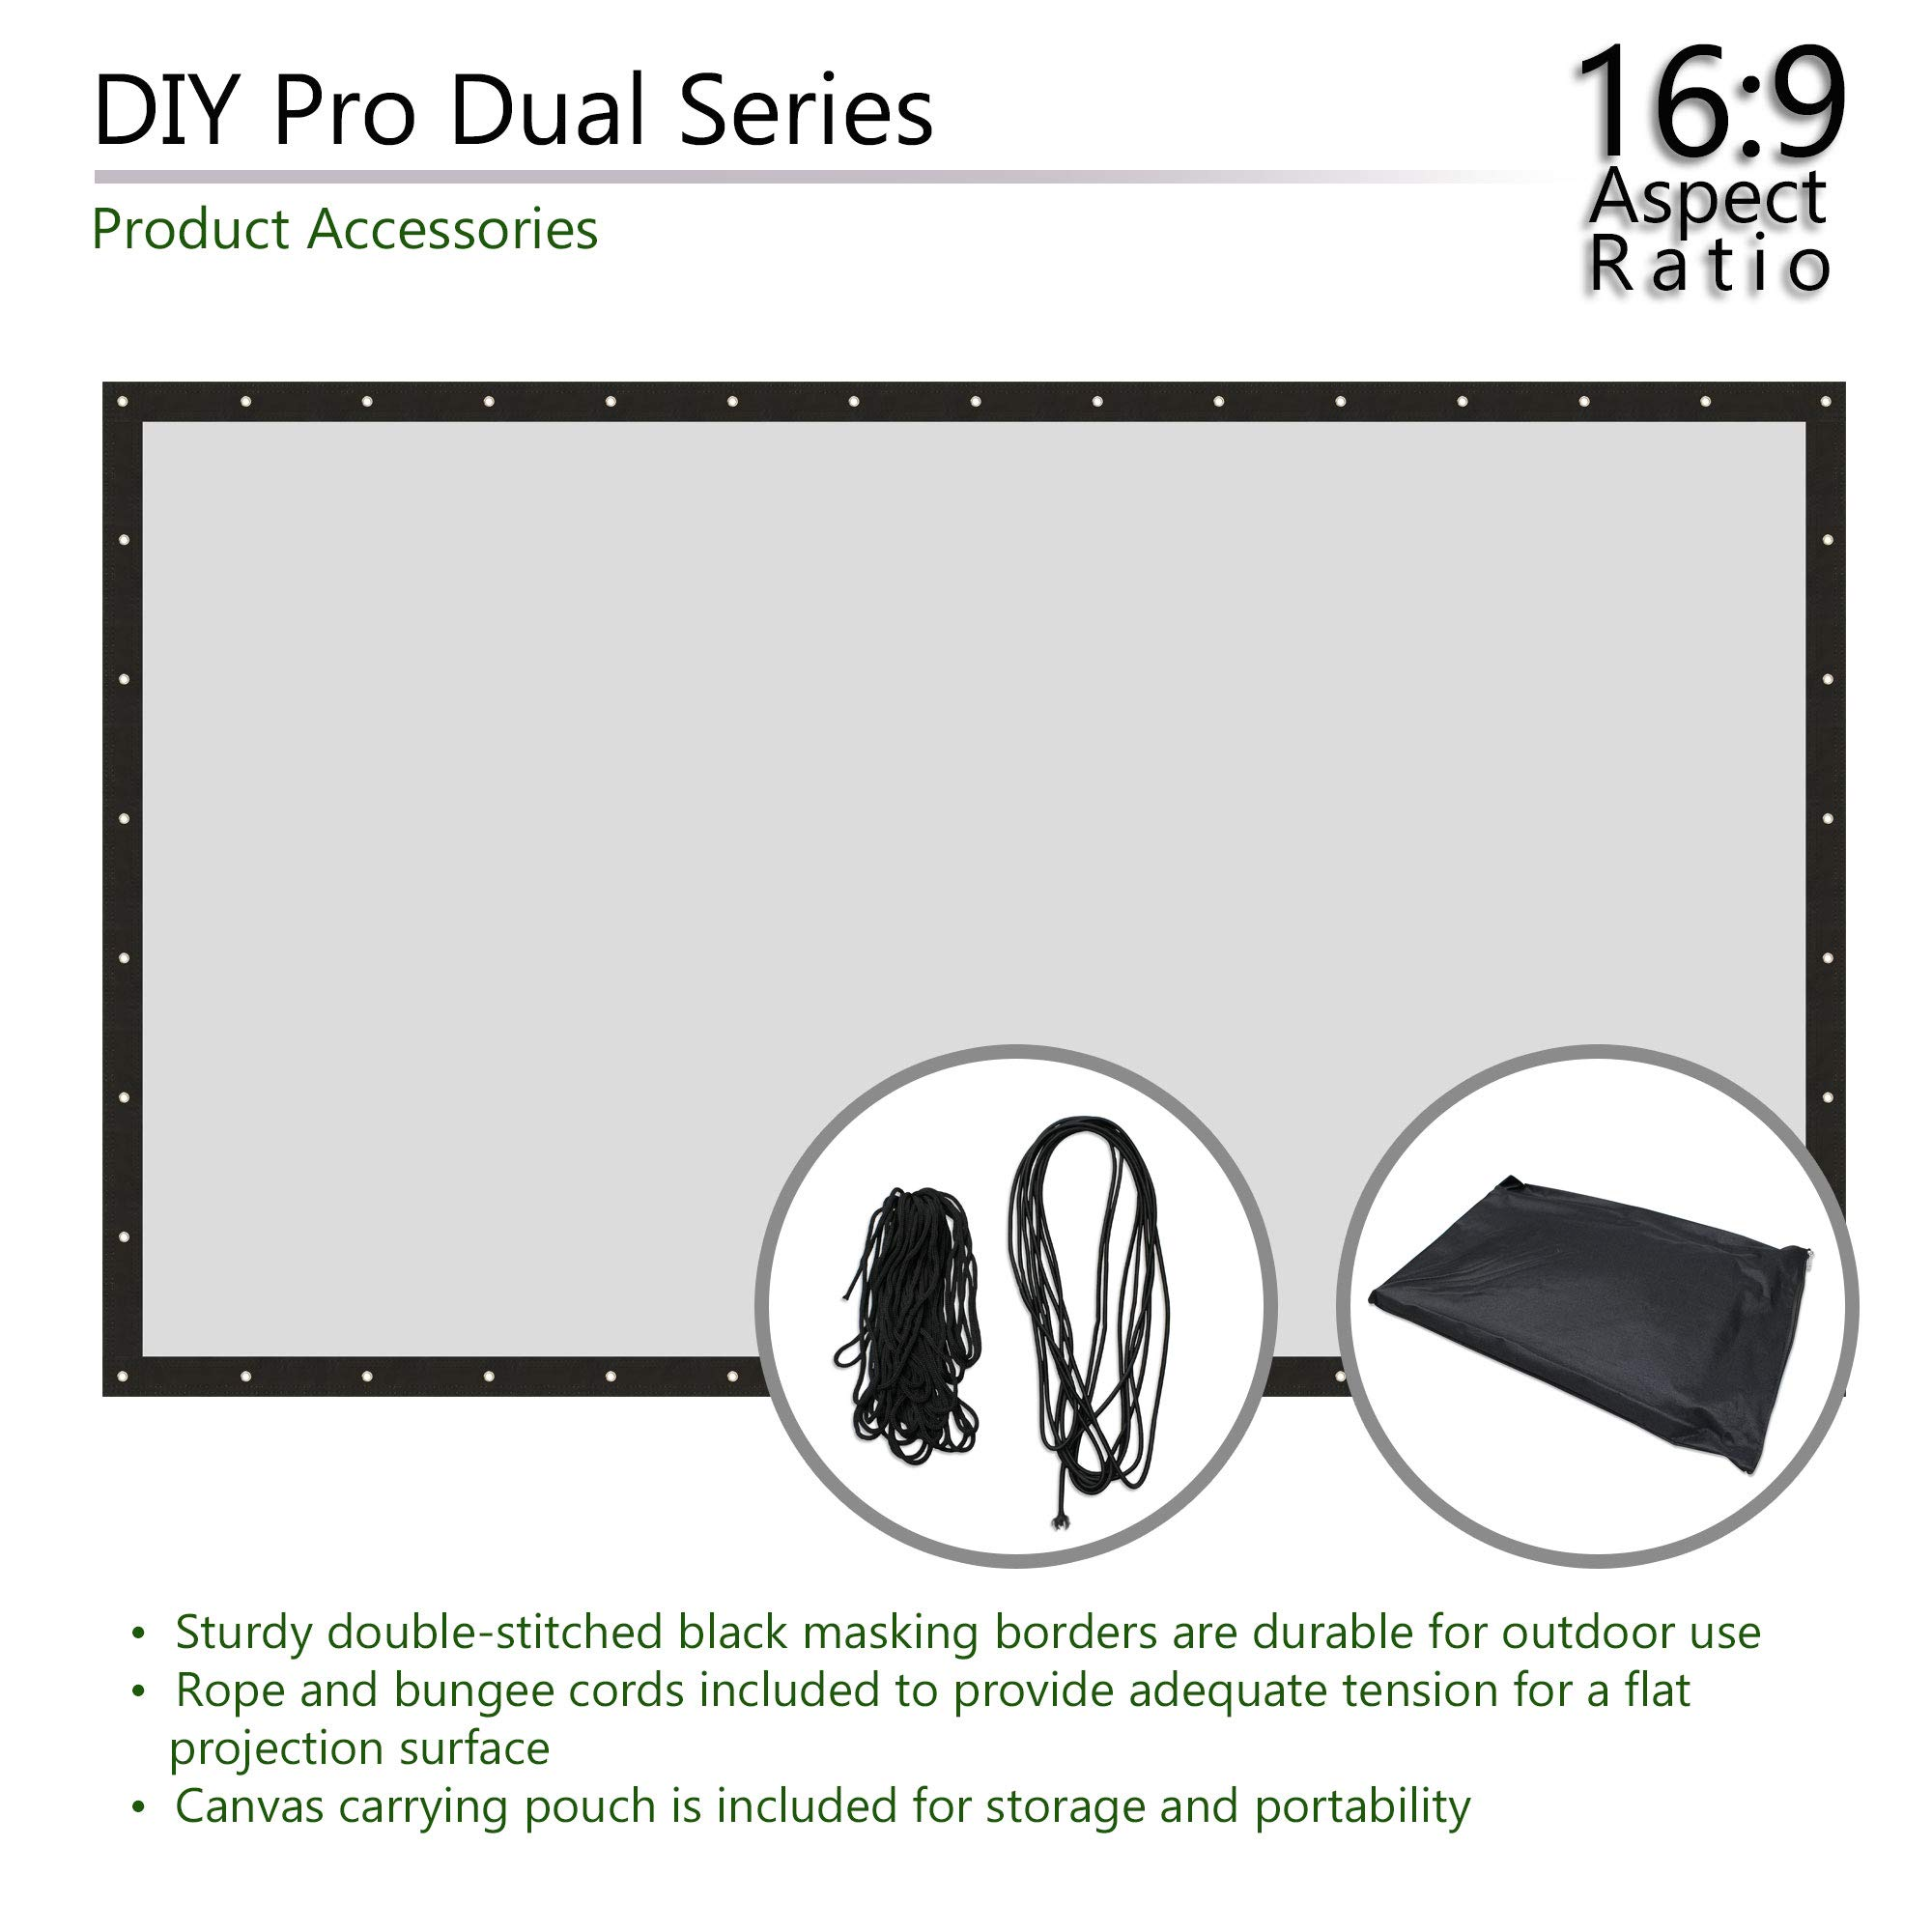 Elite Screens DIY PRO Dual, 96-INCH 16:9, Do-It-Yourself Front & Rear Indoor/Outdoor Projector Screen for Home Theater Cinema with Finished Edges & Grommets, DIY96RH1-DUAL by Elite Screens